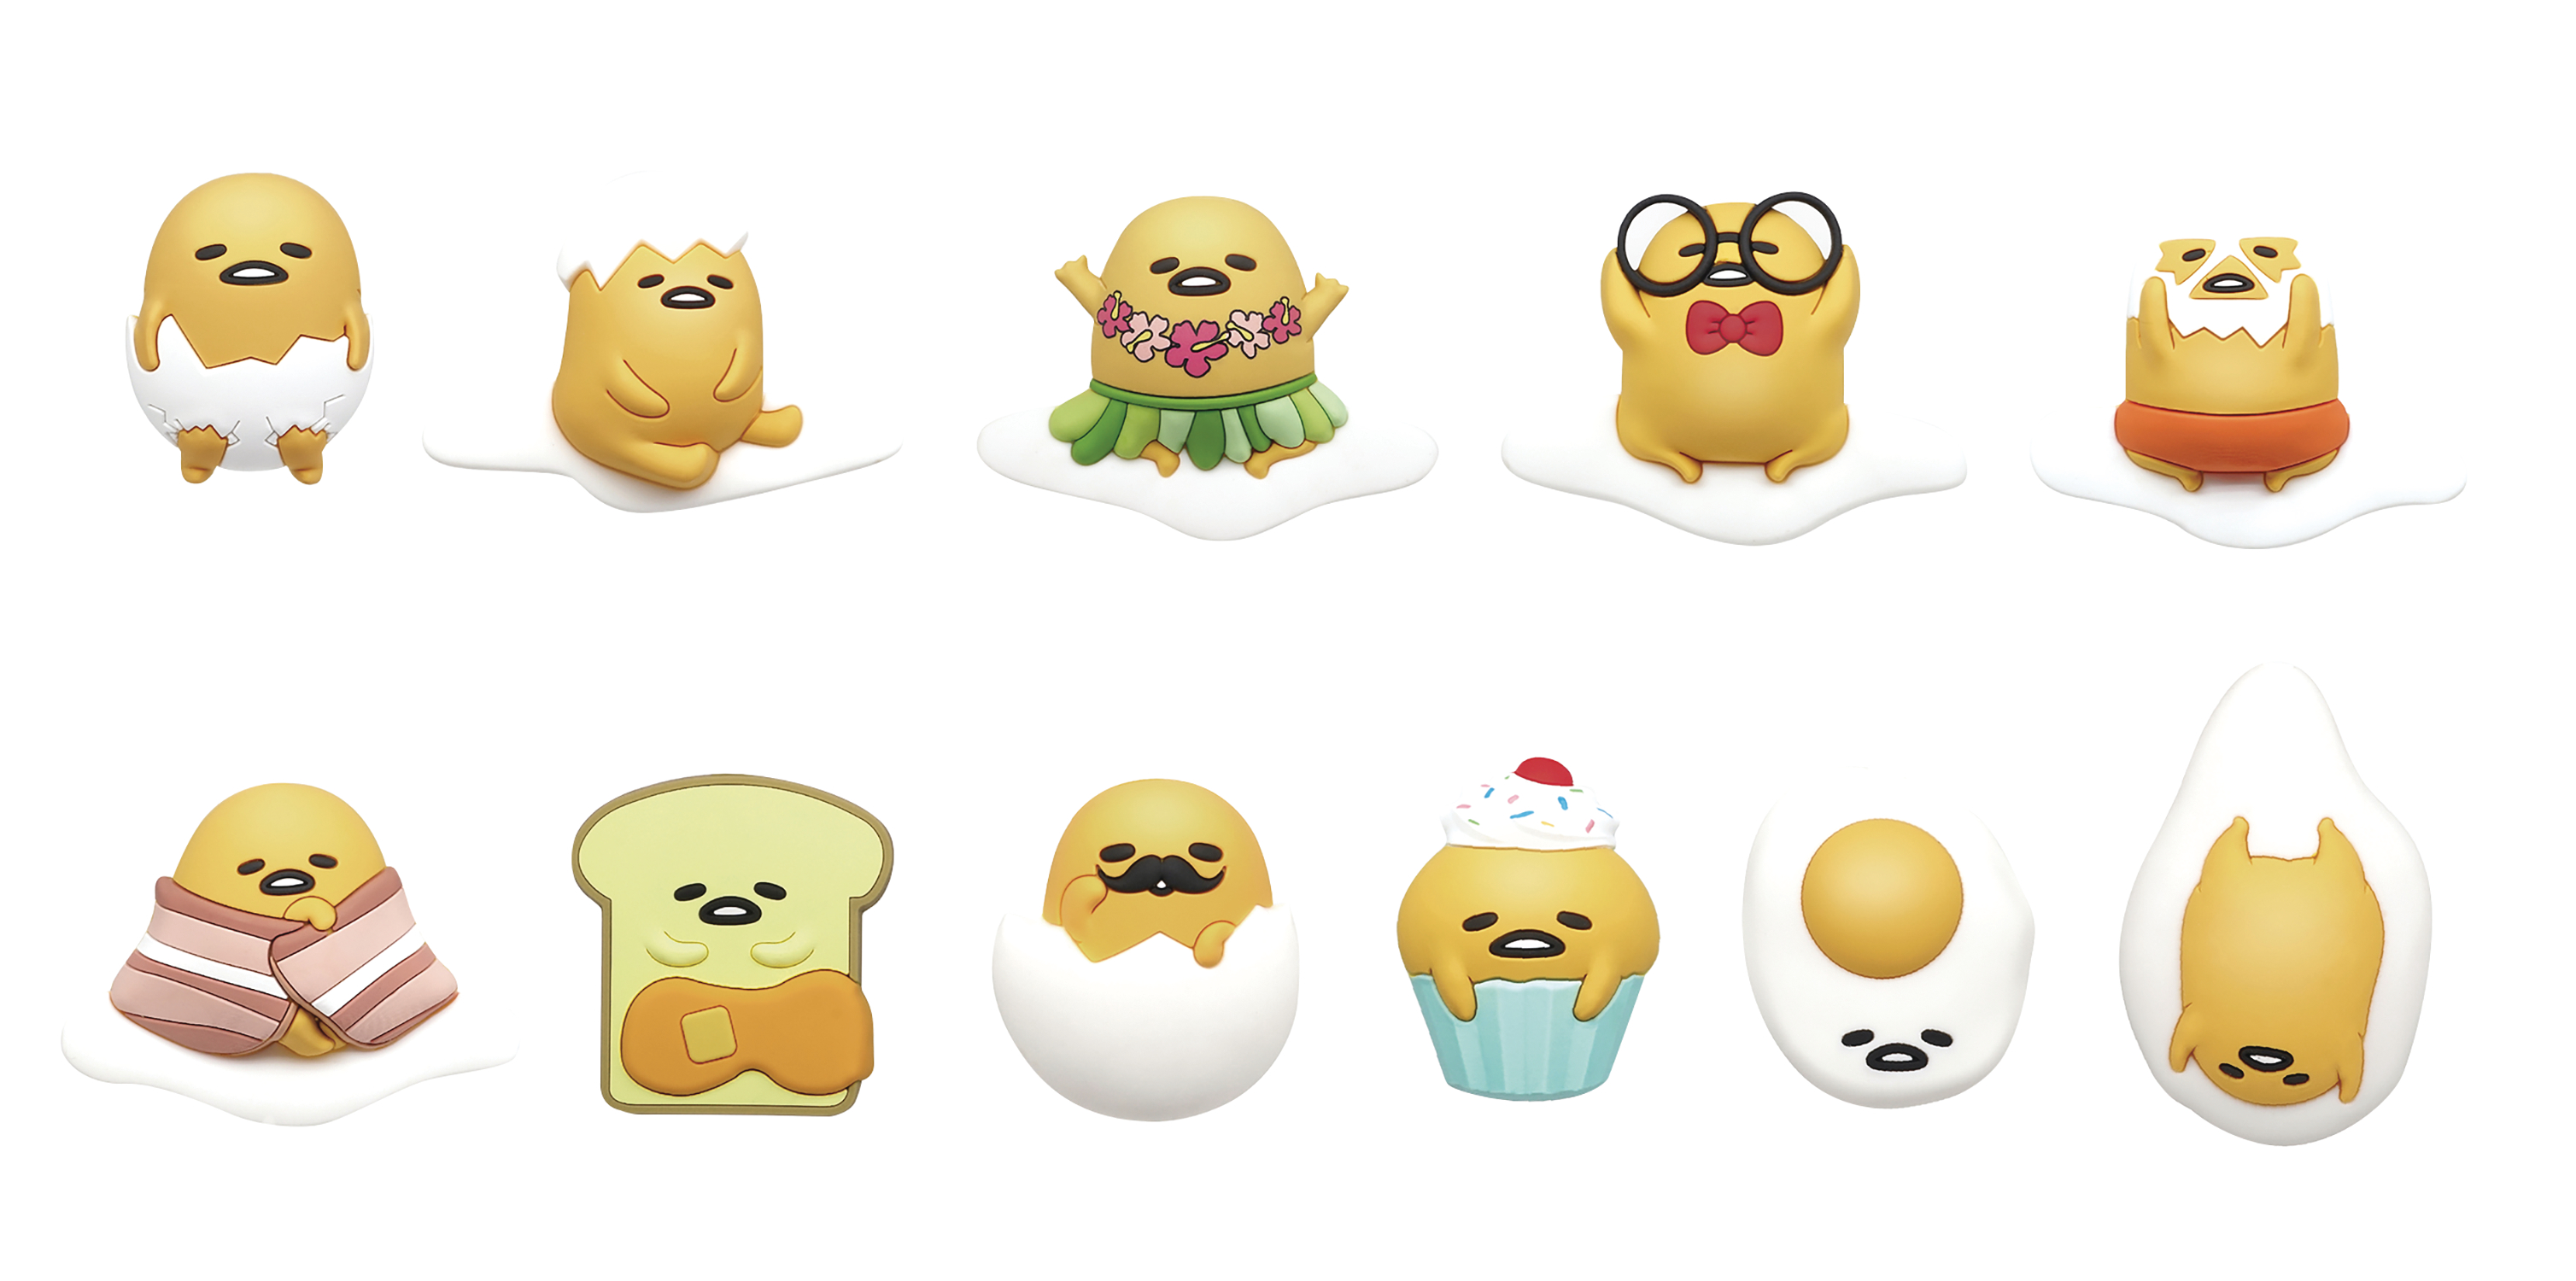 SANRIO GUDETAMA 3D FOAM BAG CLIP 24PCS BMB DS